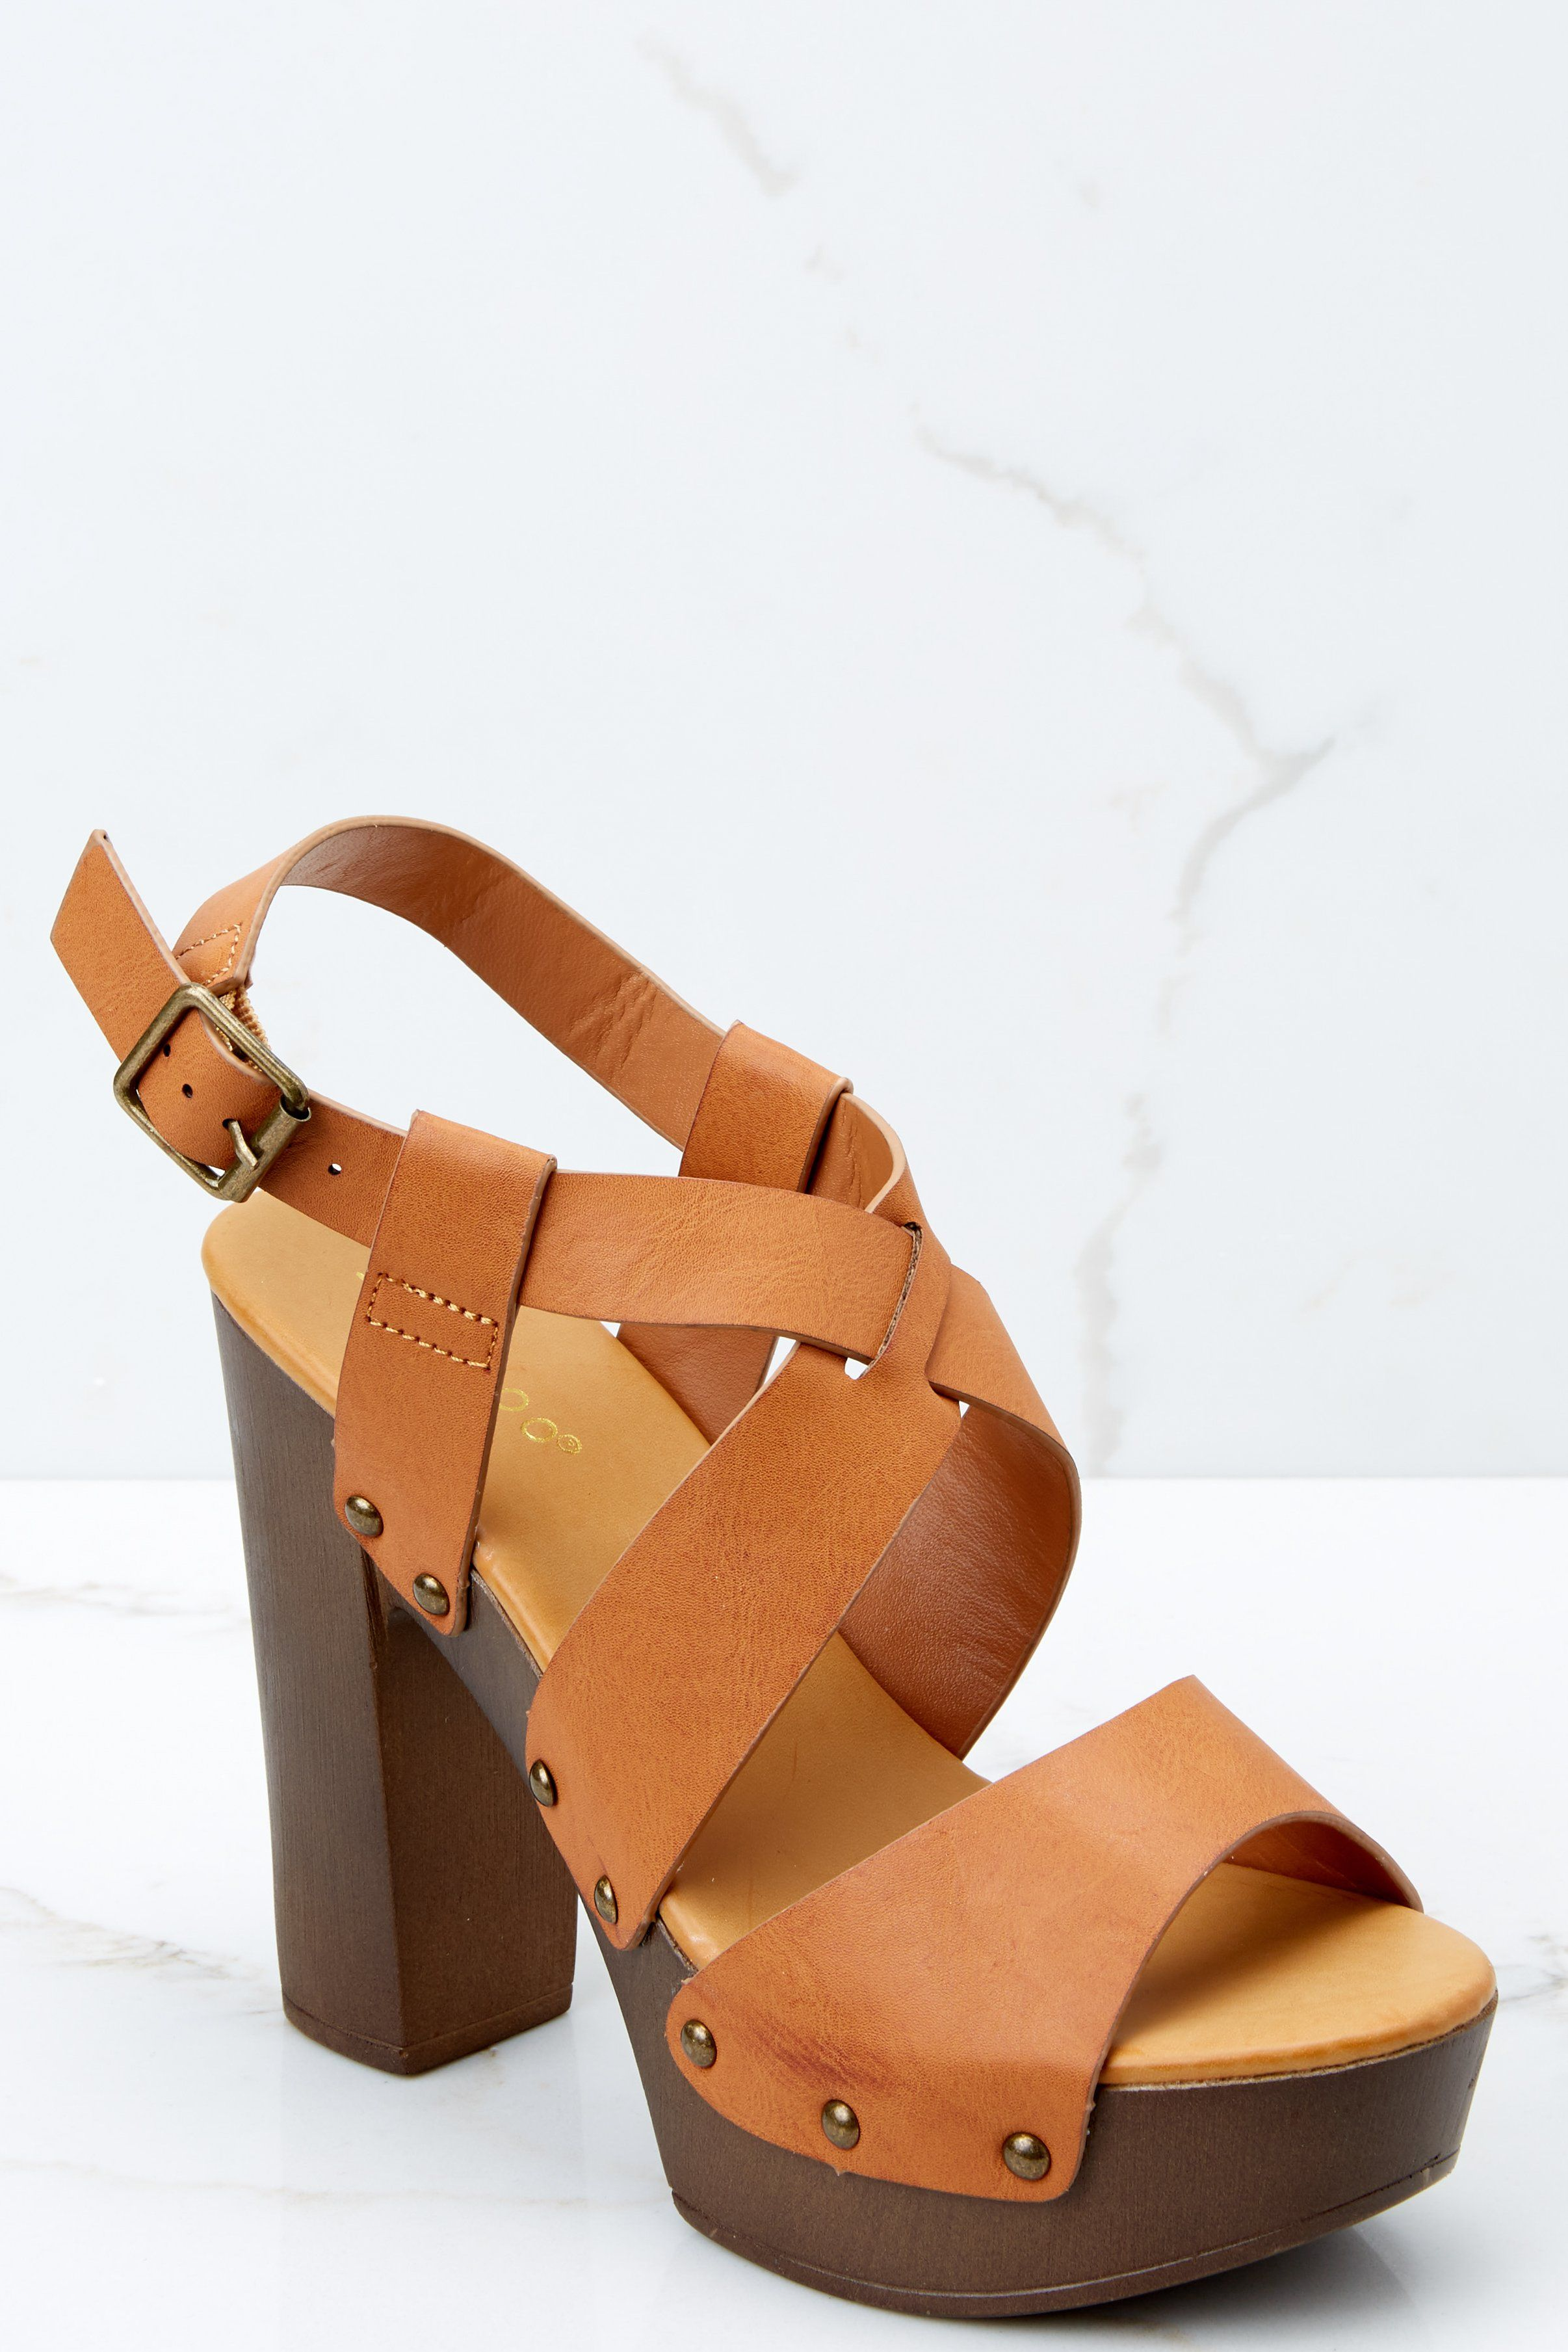 a8bb6e2d3f51 Trendy Brown Ankle Strap Heels - Cute Heels - Heels -  39.00 – Red Dress  Boutique